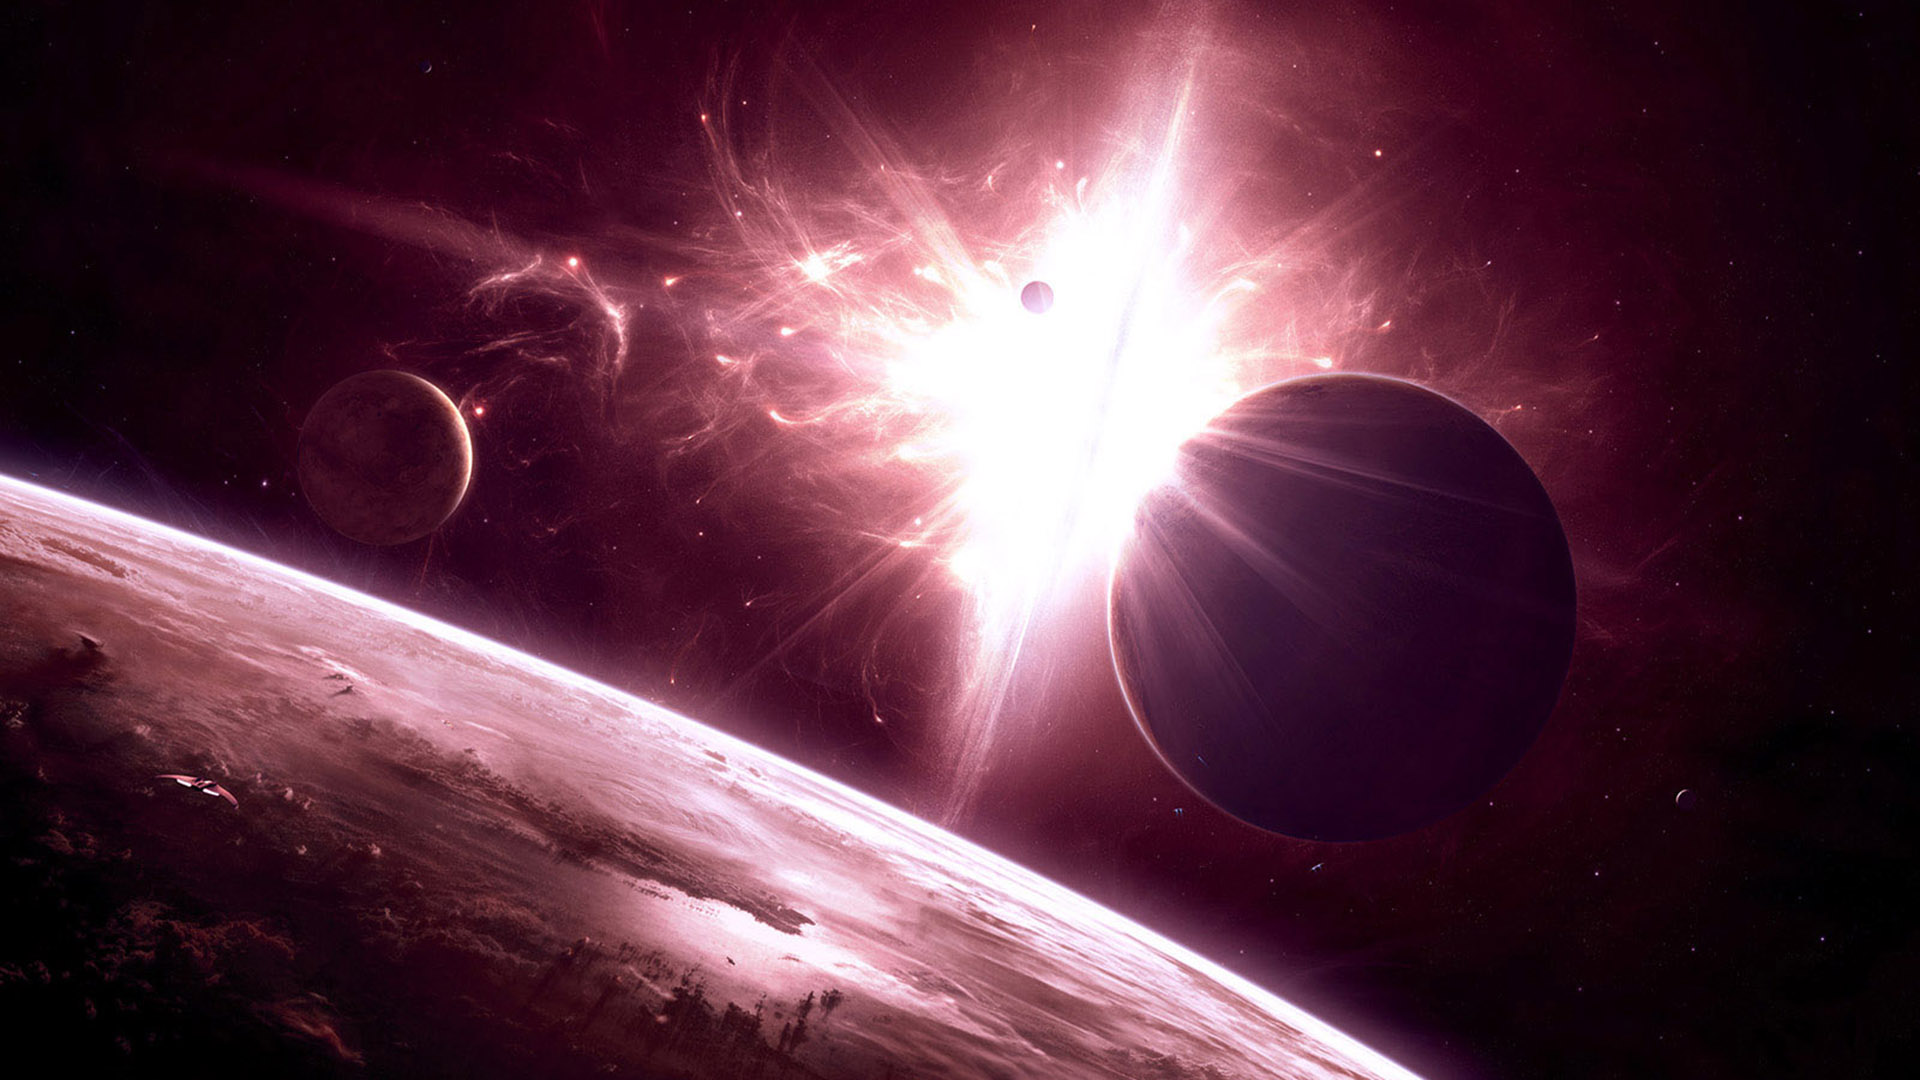 Space High Resolution Wallpapers 1080p 1920x1080